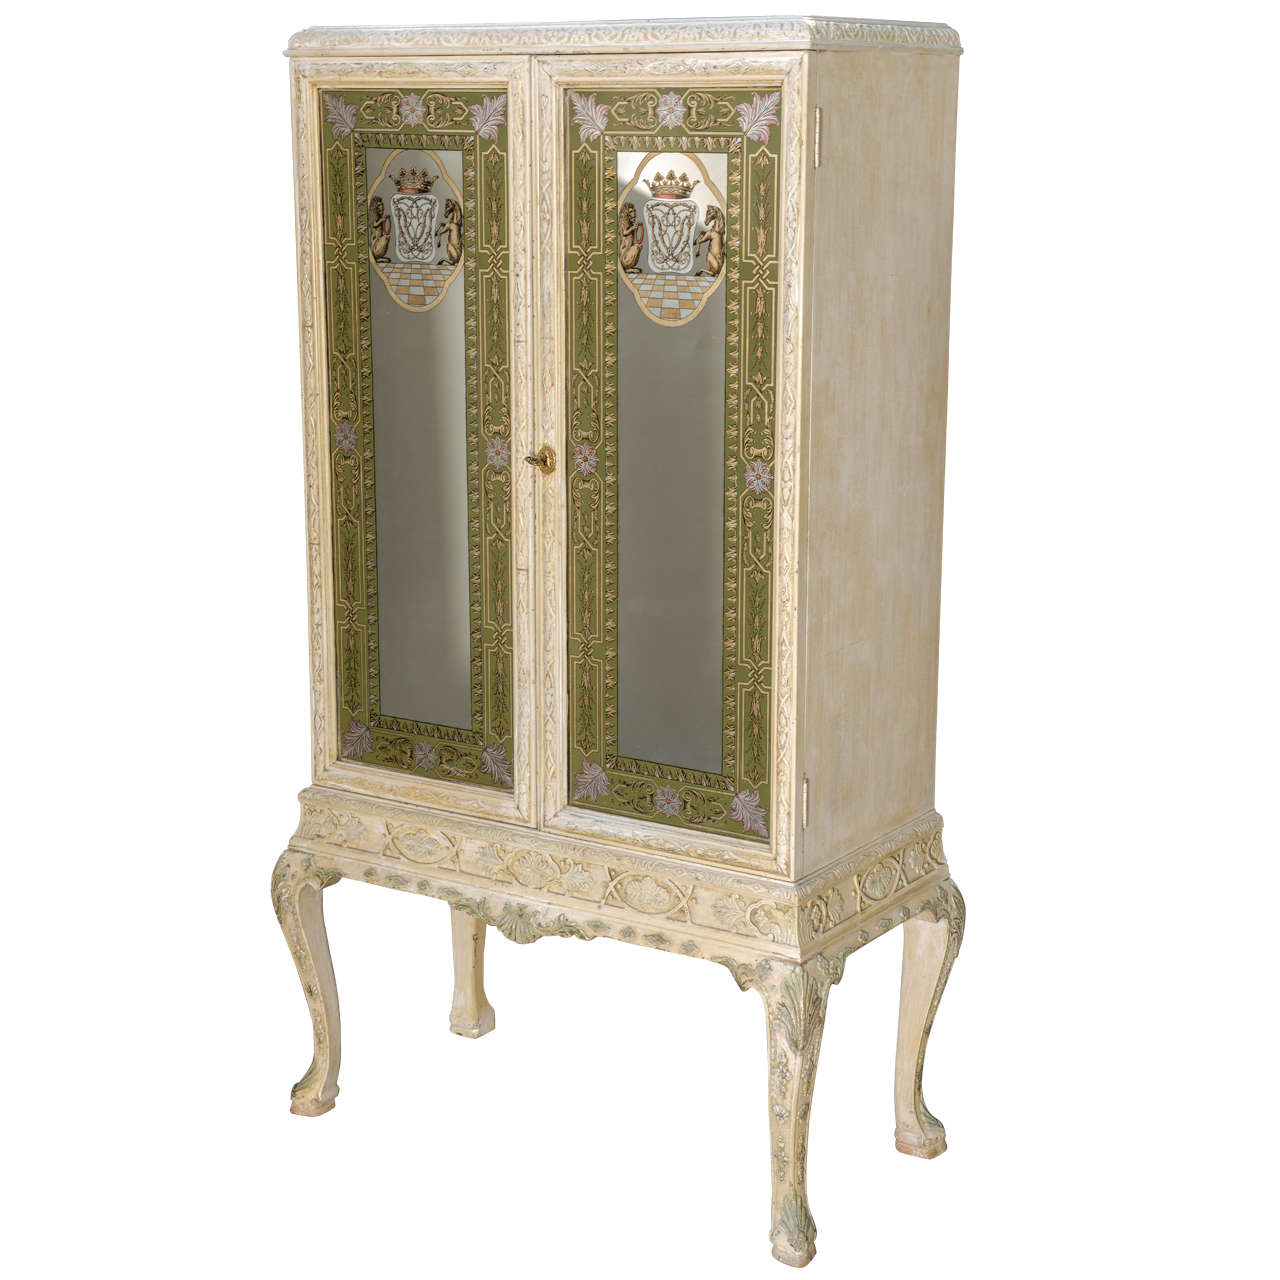 Painted Cabinet with Eglomise Doors